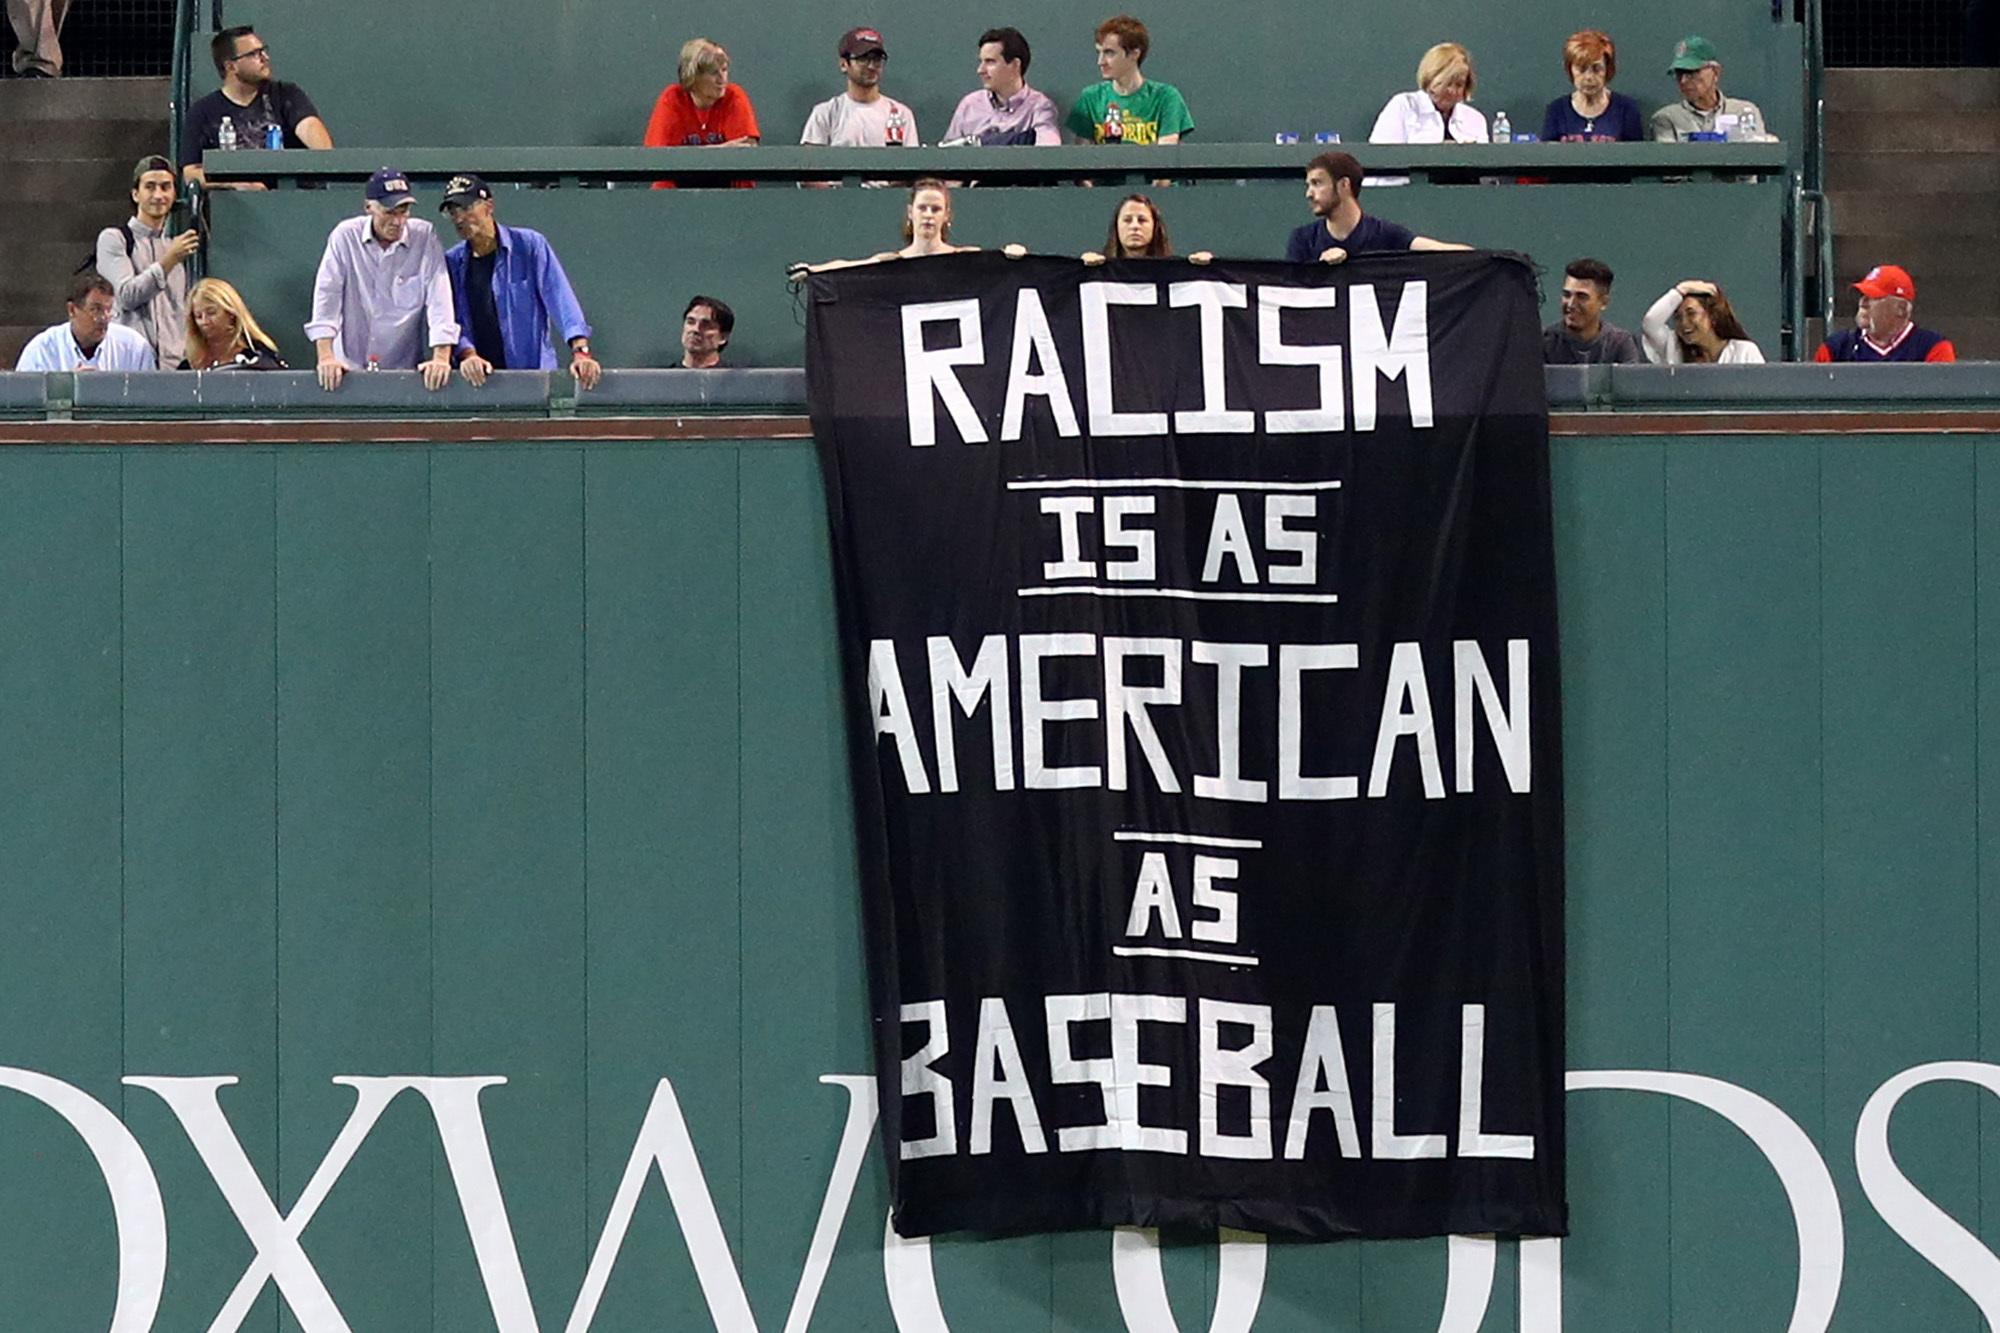 A high school baseball player in Iowa faced racist taunts during a game. His family wants the incident to spark rule changes addressing hateful jeering in sports.